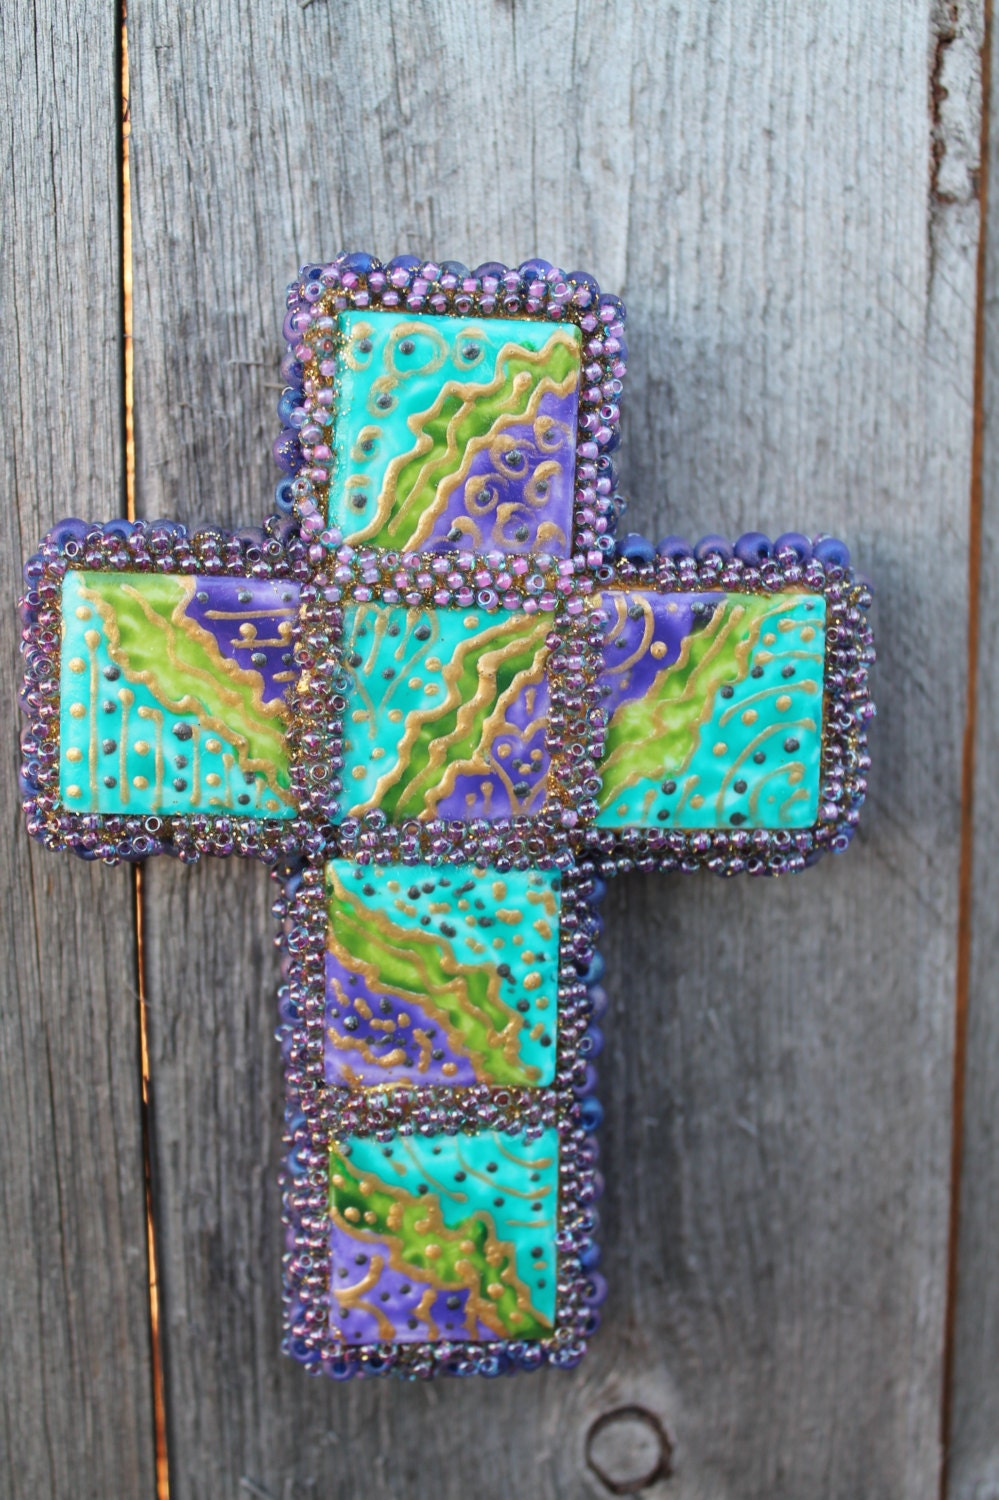 Handmade Christian Wall Decor Turquoise Purple Green And